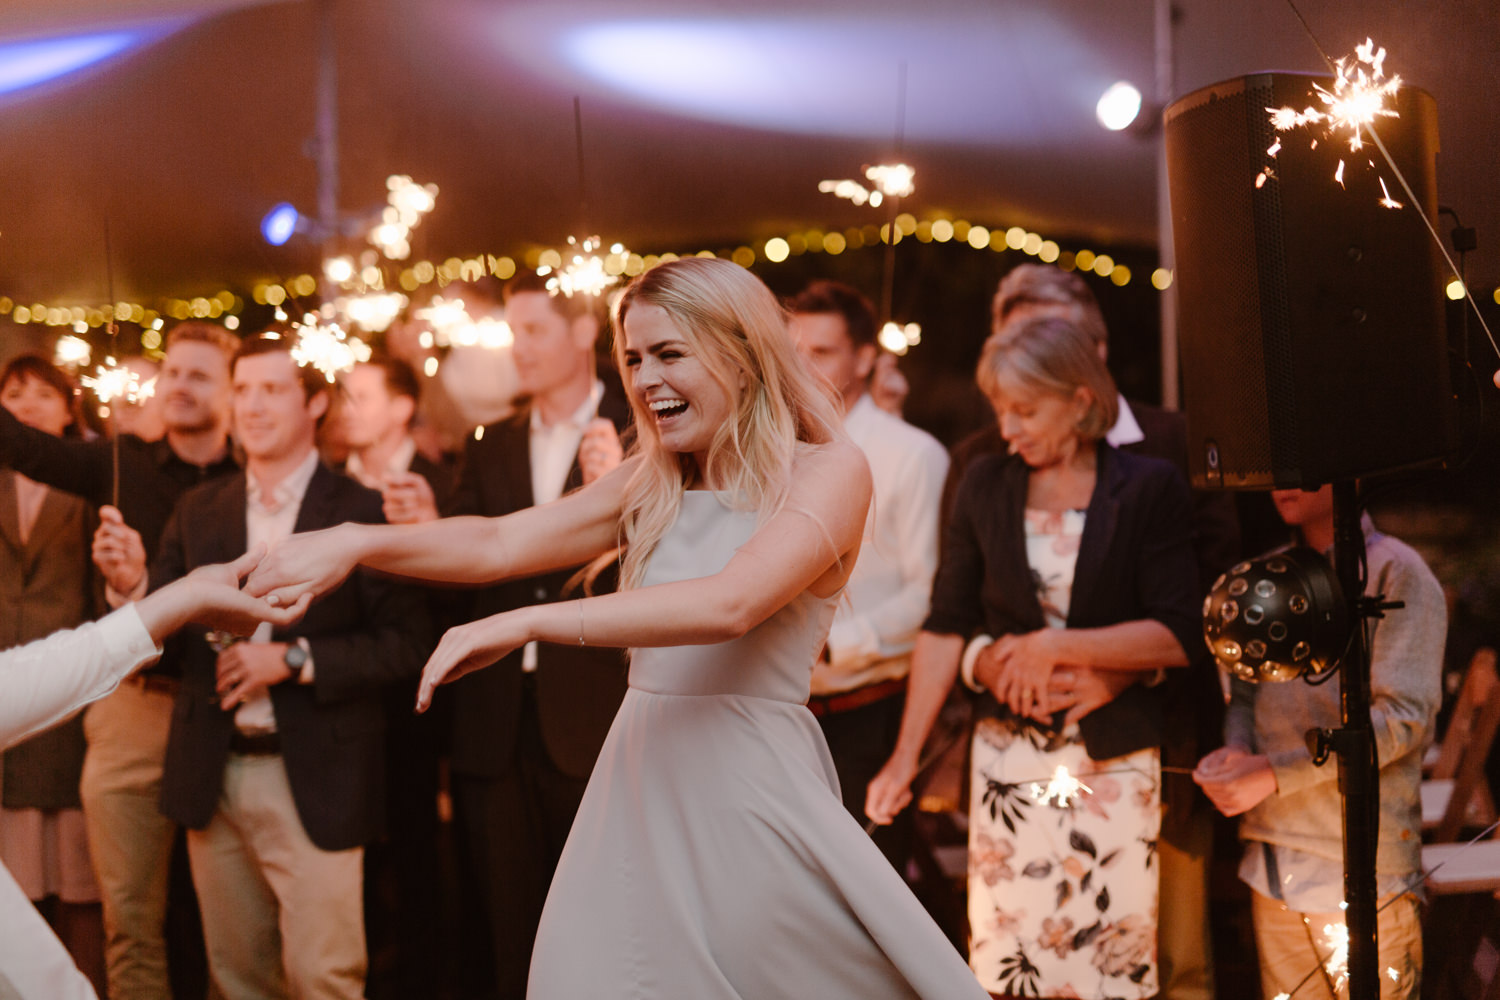 Bride dancing with friends while laughing immenesly.